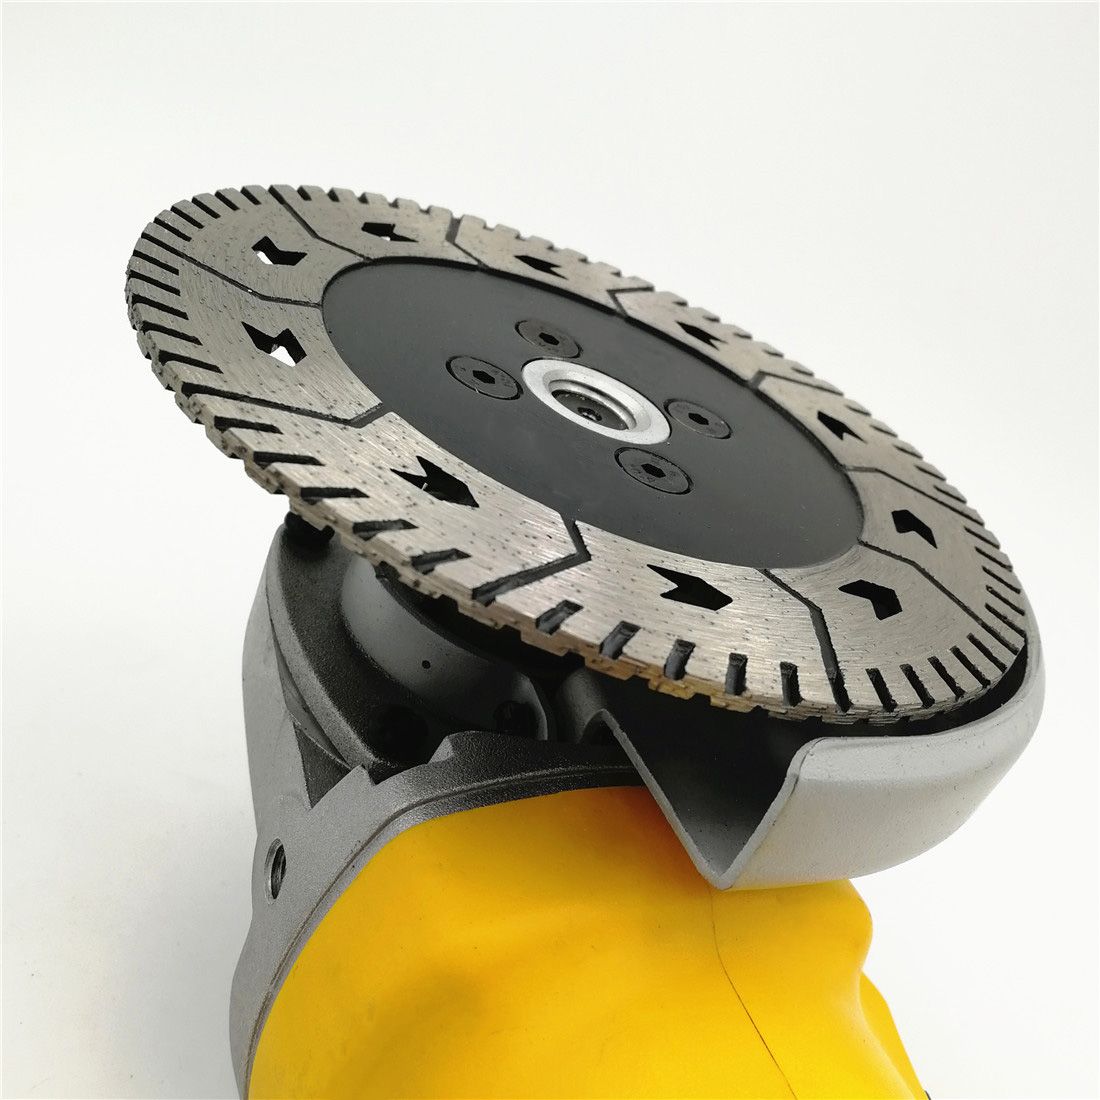 125 X 2.8mm M14 Double-Sided Diamond Saw Blade Grinding Slice Sharp Type With Flange Wet / Dry Cutting Aggressive Disc Saw Blade